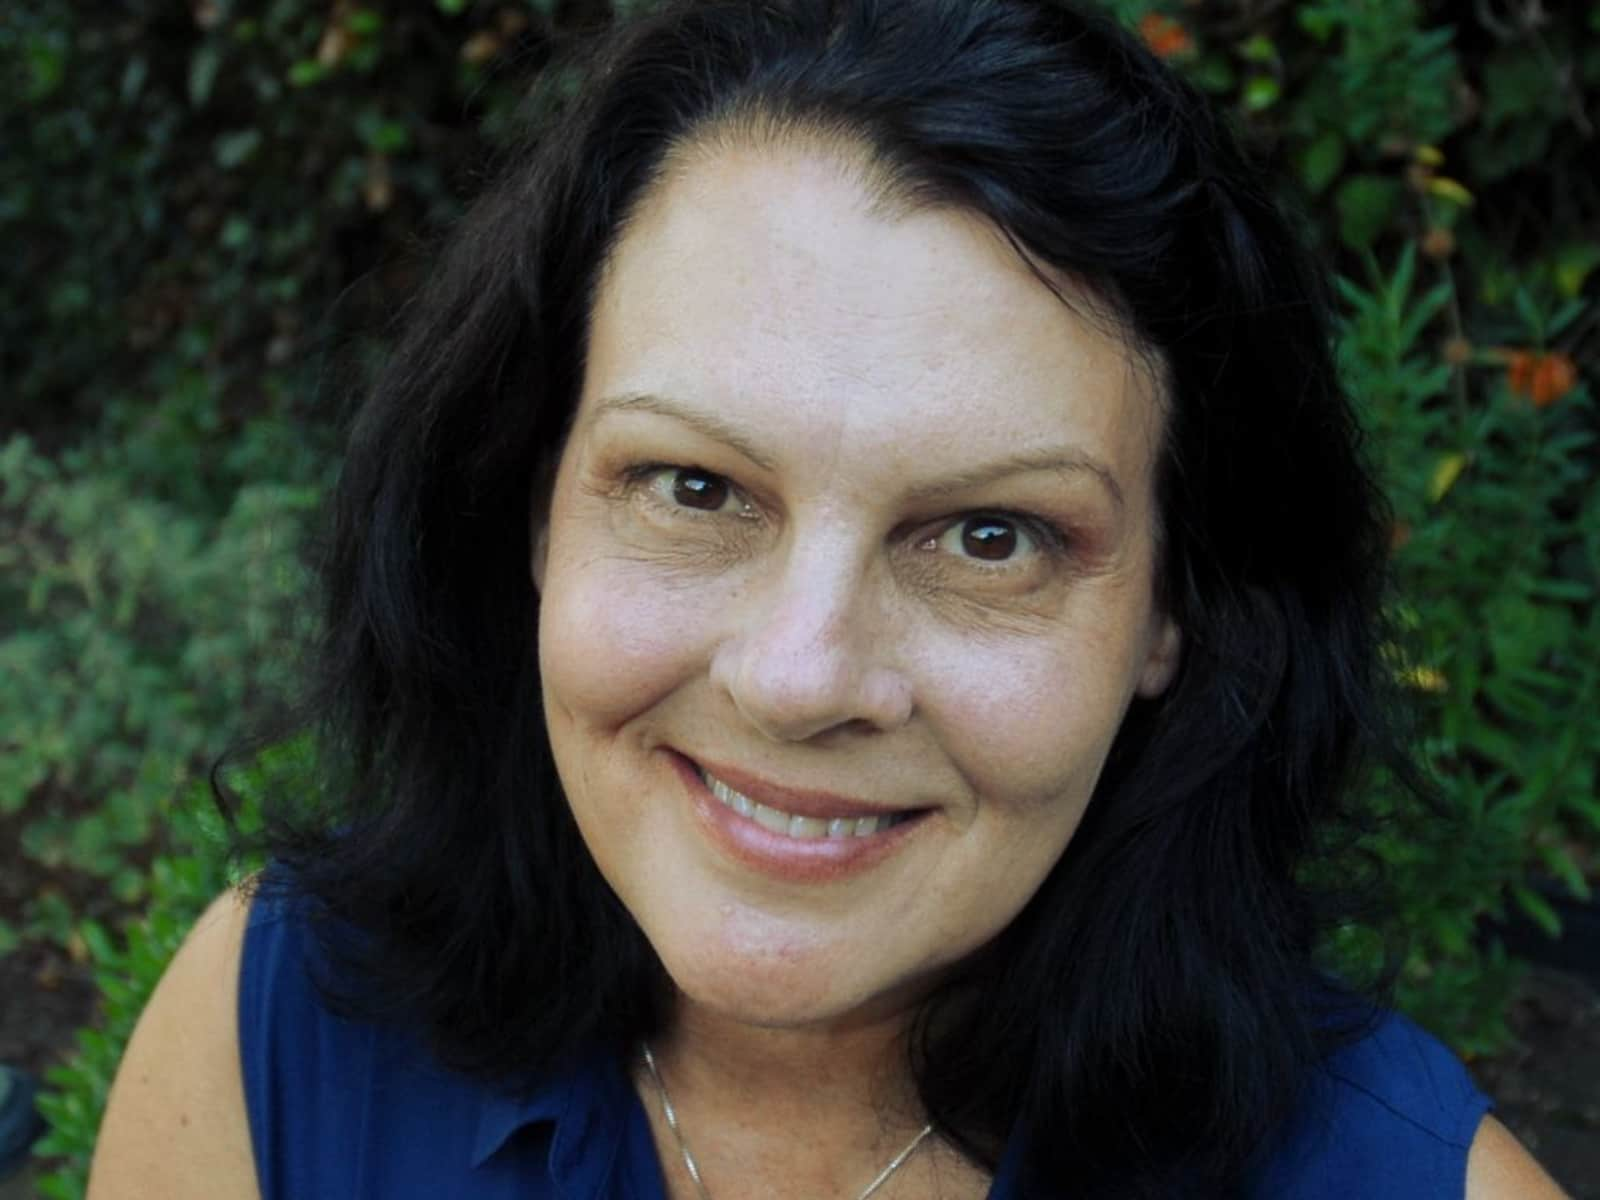 Teresa from Los Angeles, California, United States